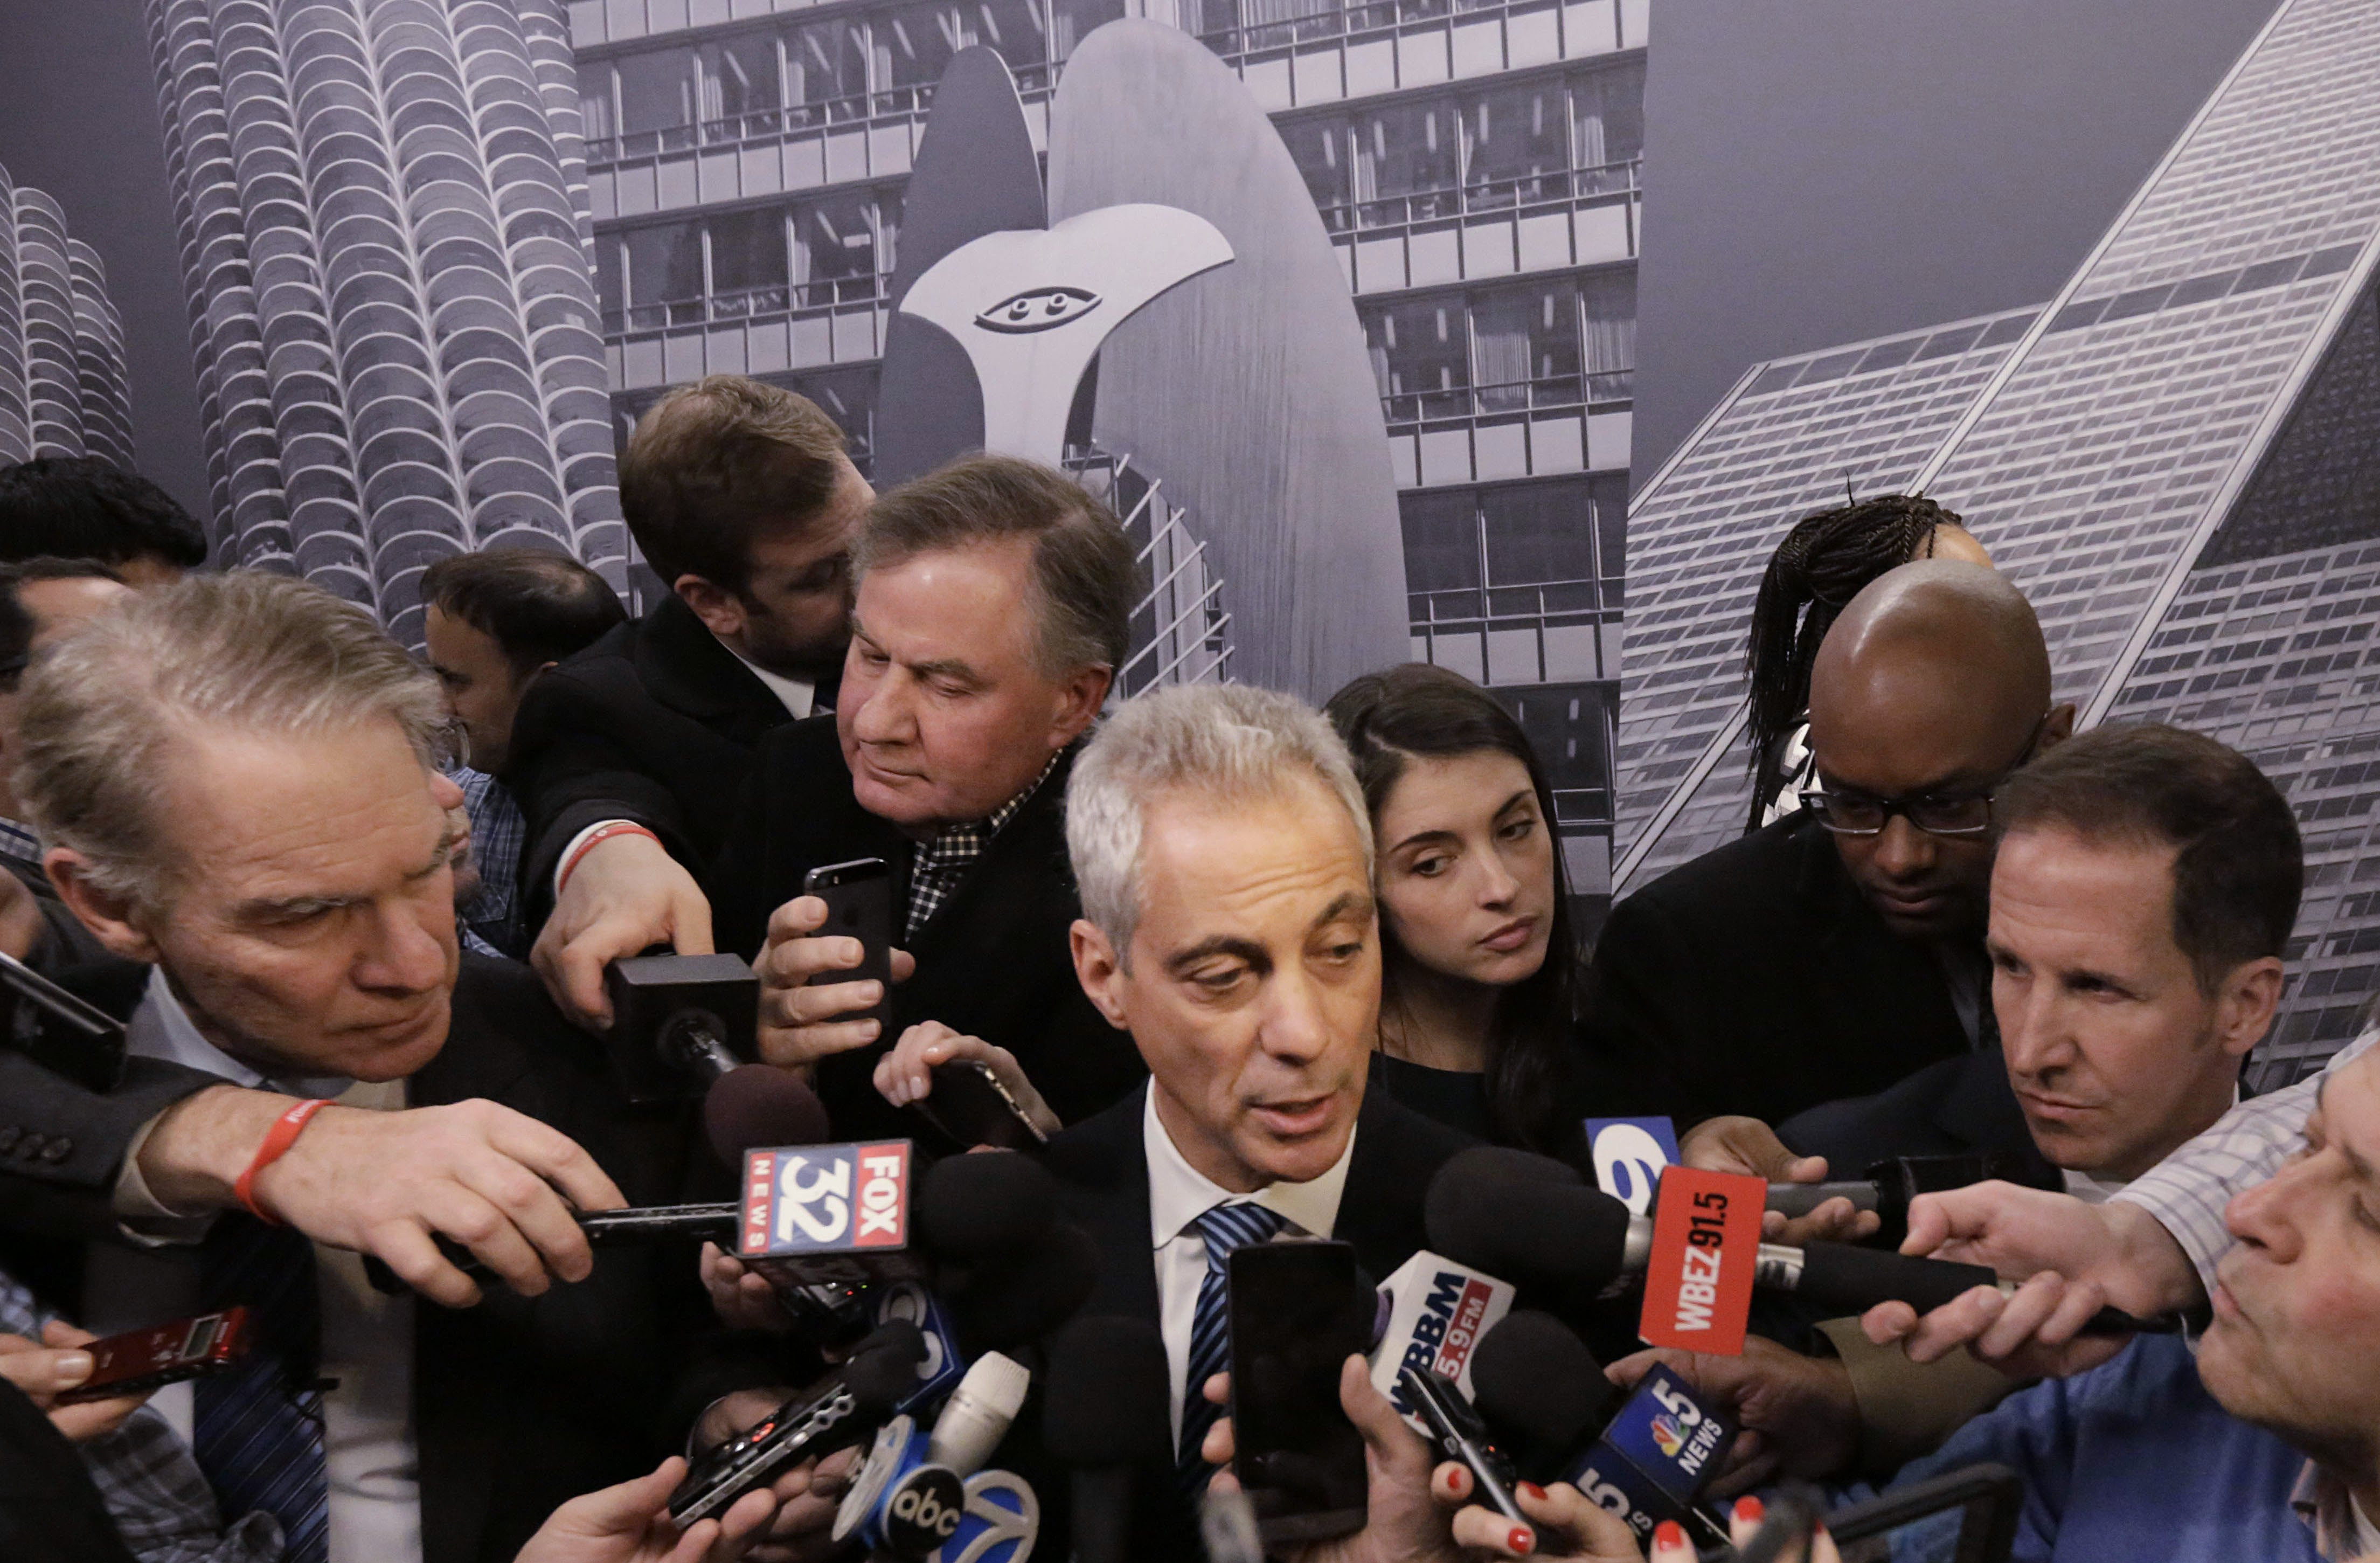 FILE - In this Dec. 3, 2015 file photo, Chicago Mayor Rahm Emanuel speaks to the media, in Chicago. Chicago officials released hundreds of emails Thursday Dec. 31, 2015 related to a video showing a white police officer shooting a black teenager 16 times that wasn't released until more than a year after the shooting. Mayor Emanuel and Chicago police have been under heavy scrutiny since the city, under court order, released a squad car video last month showing Officer Jason Van Dyke shooting 17-year-old Laquan McDonald in October 2014. (AP Photo/M. Spencer Green)